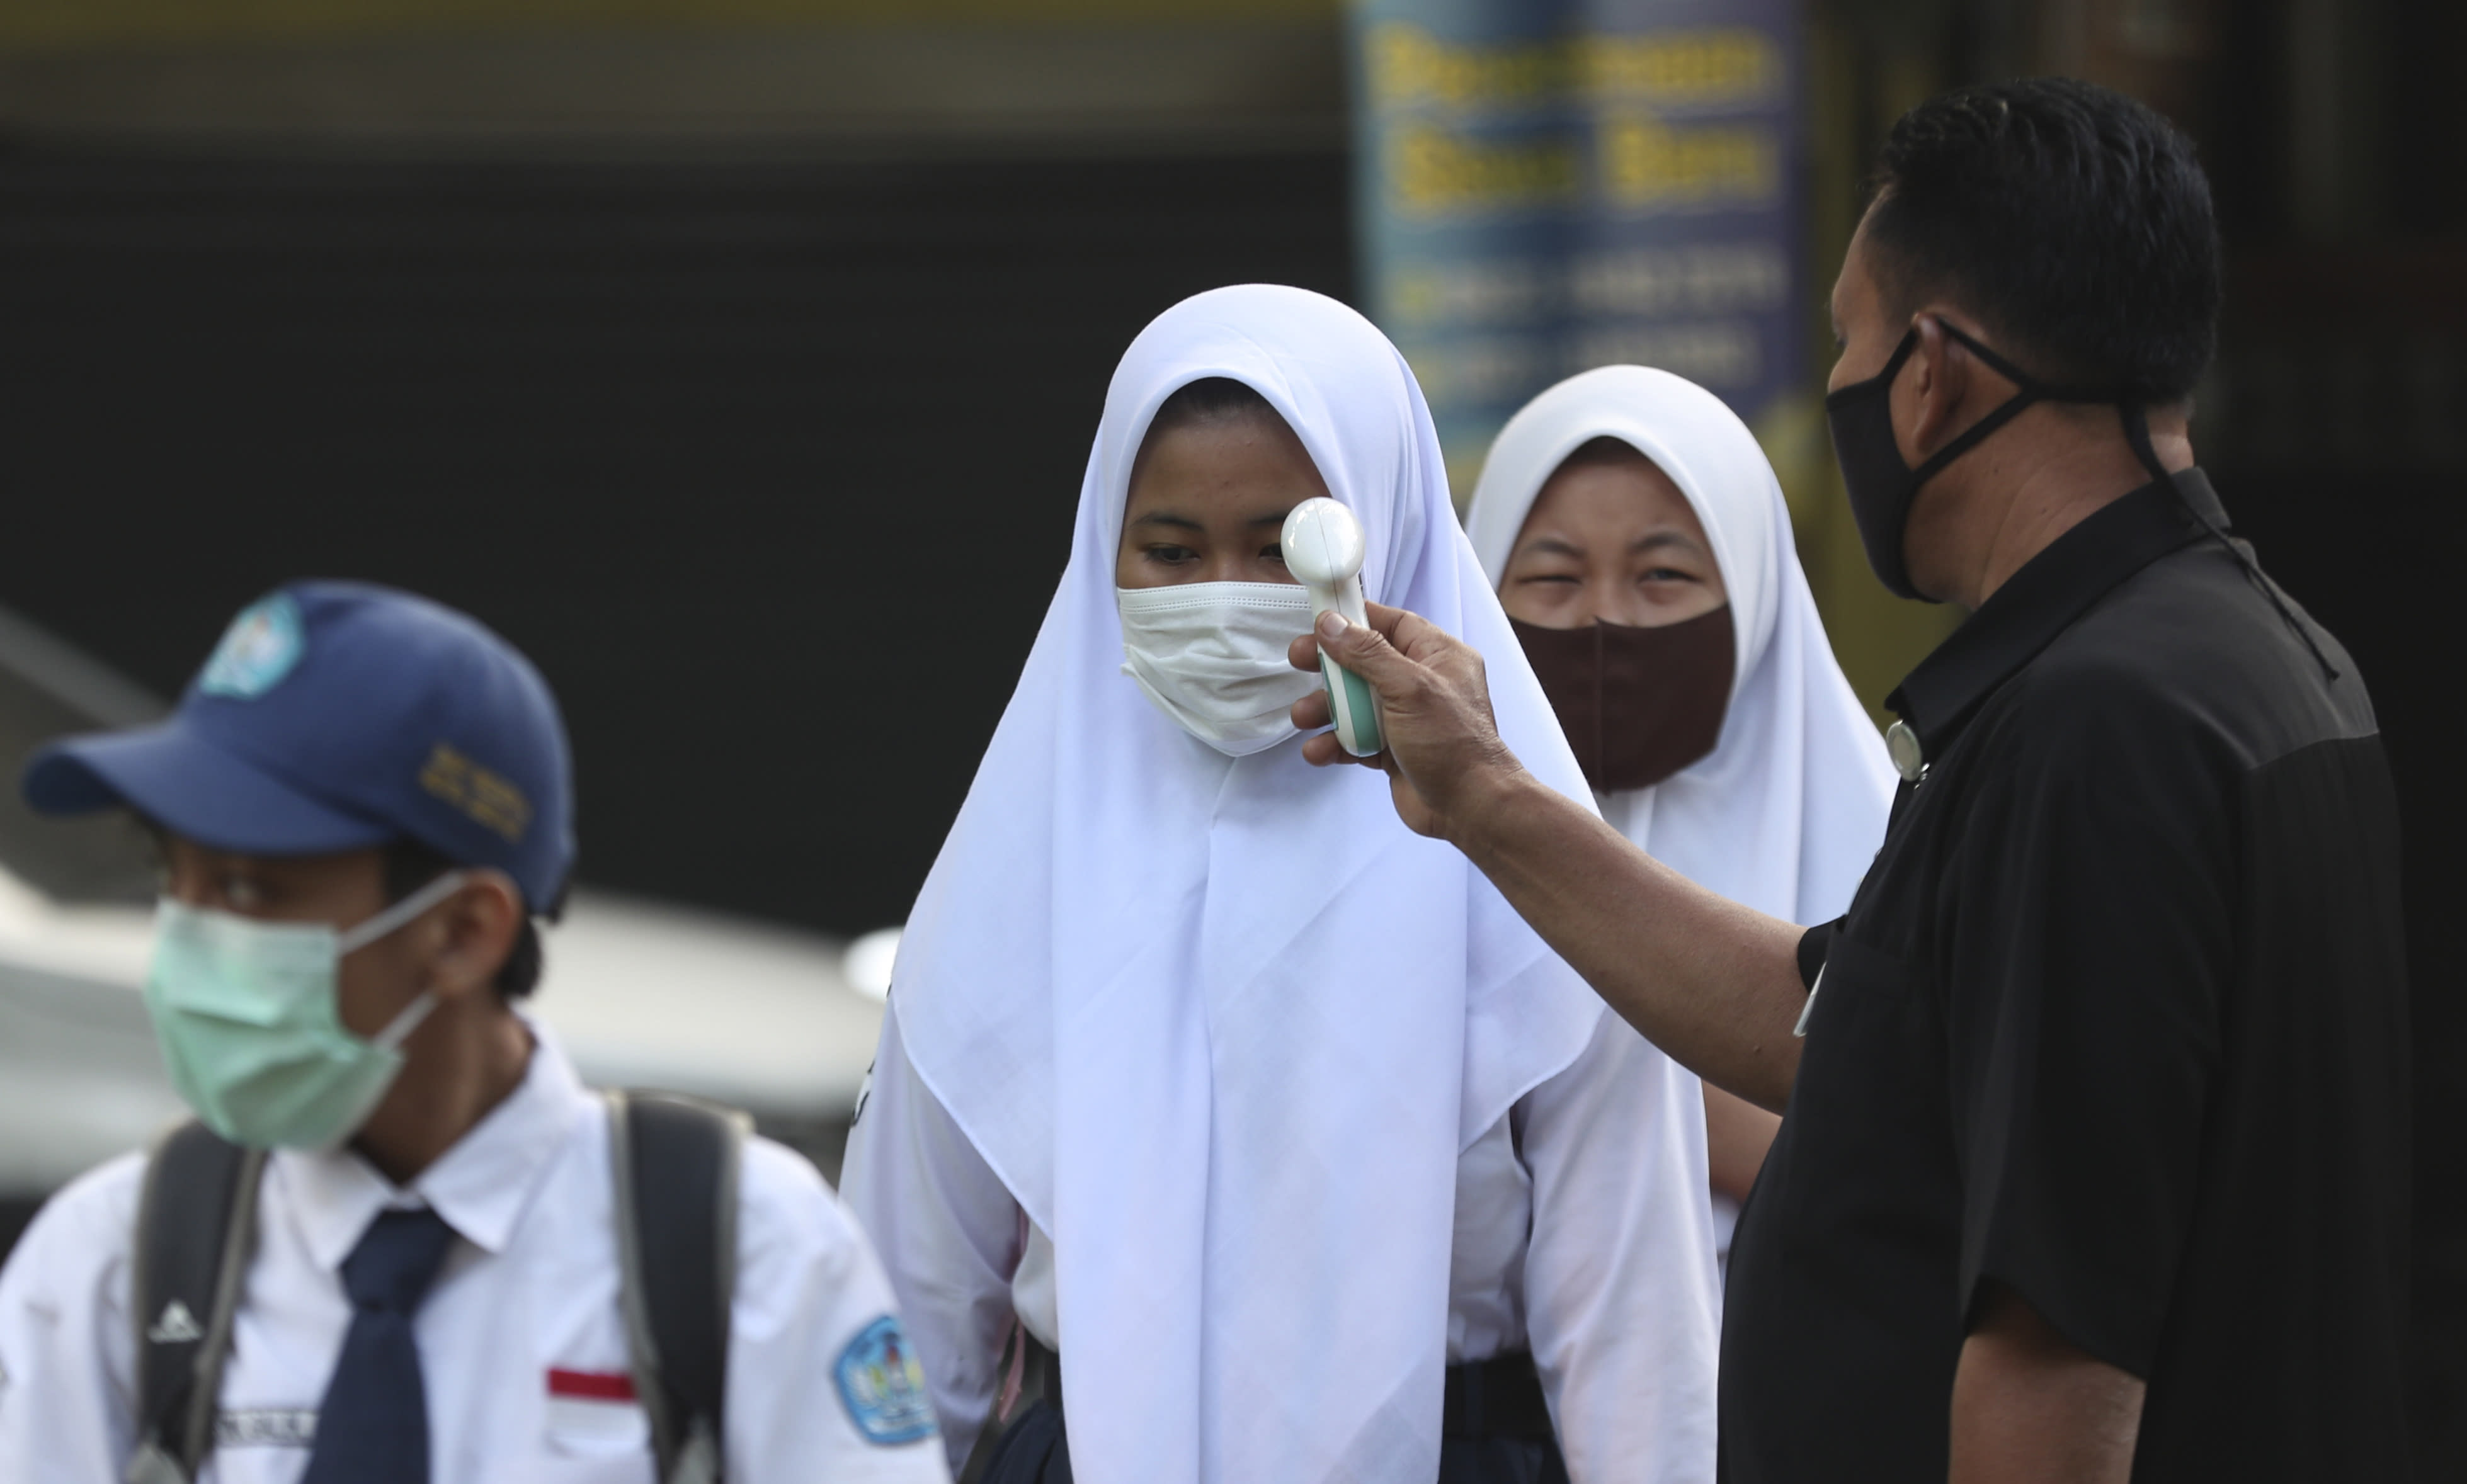 A security guard checks the body temperature of a student before entering a school amid coronavirus outbreak during the first day of school reopening at a state high school in Bekasi on the outskirts of Jakarta, Indonesia July 13, 2020. (AP Photo/Achmad Ibrahim)